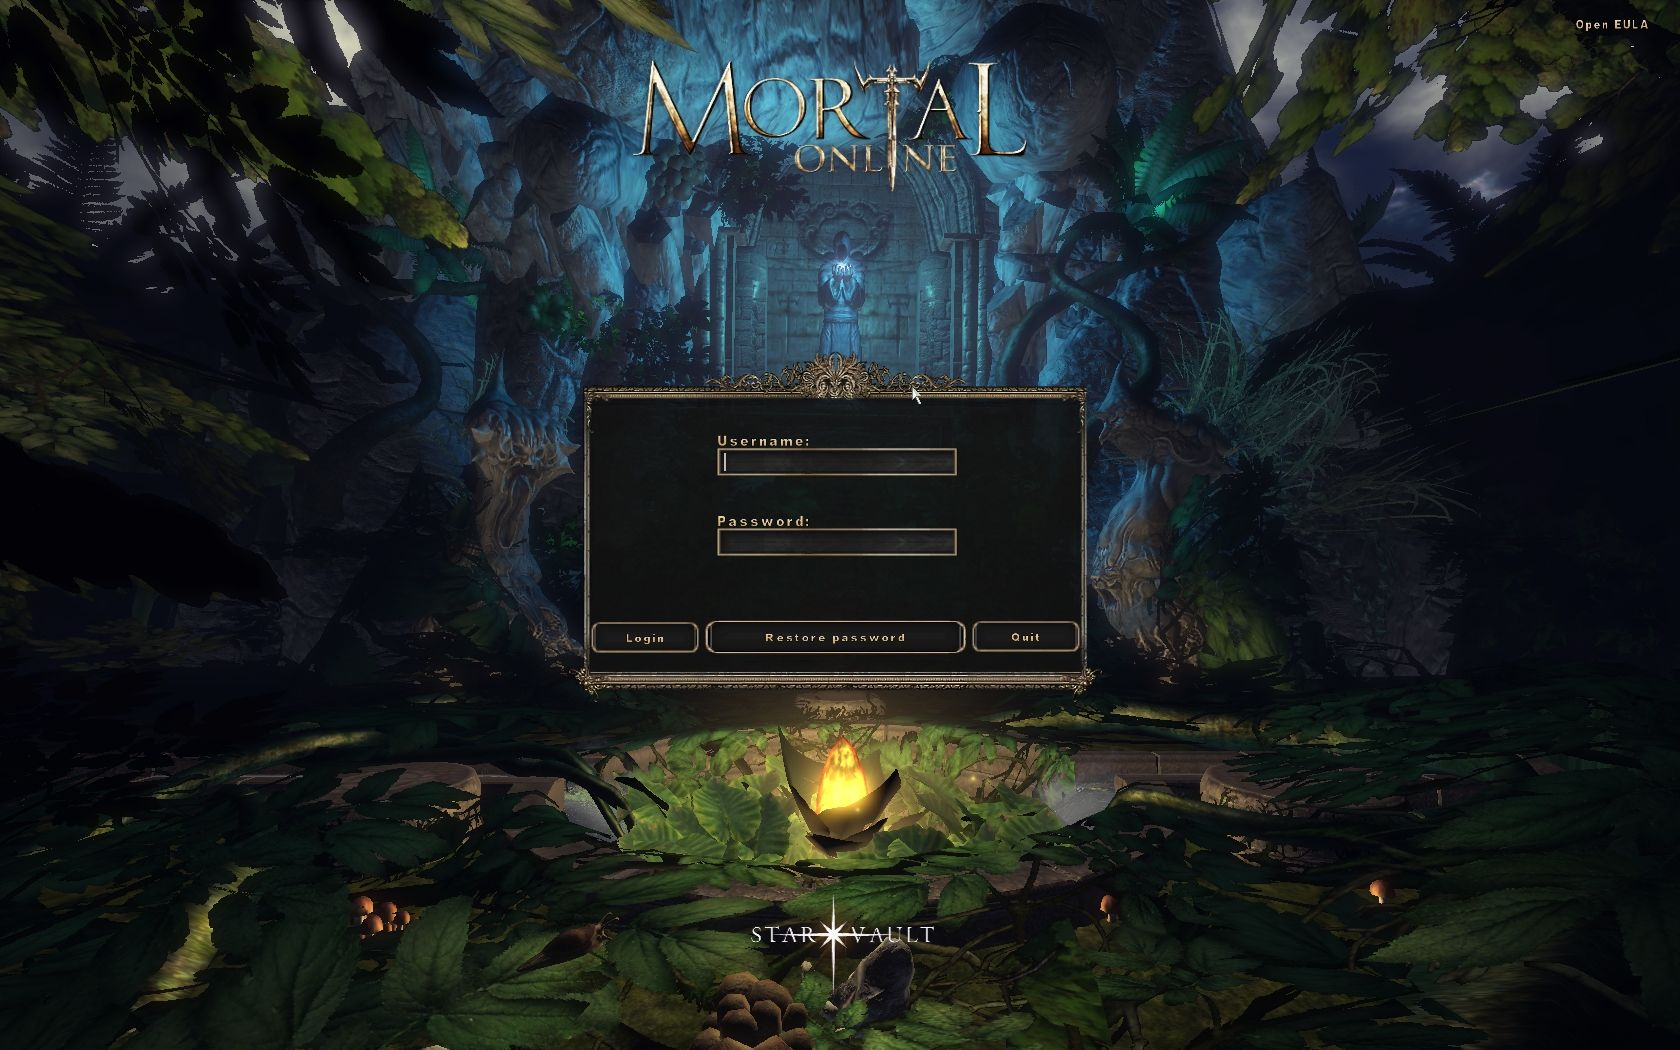 Mortal Online Windows Starting screen